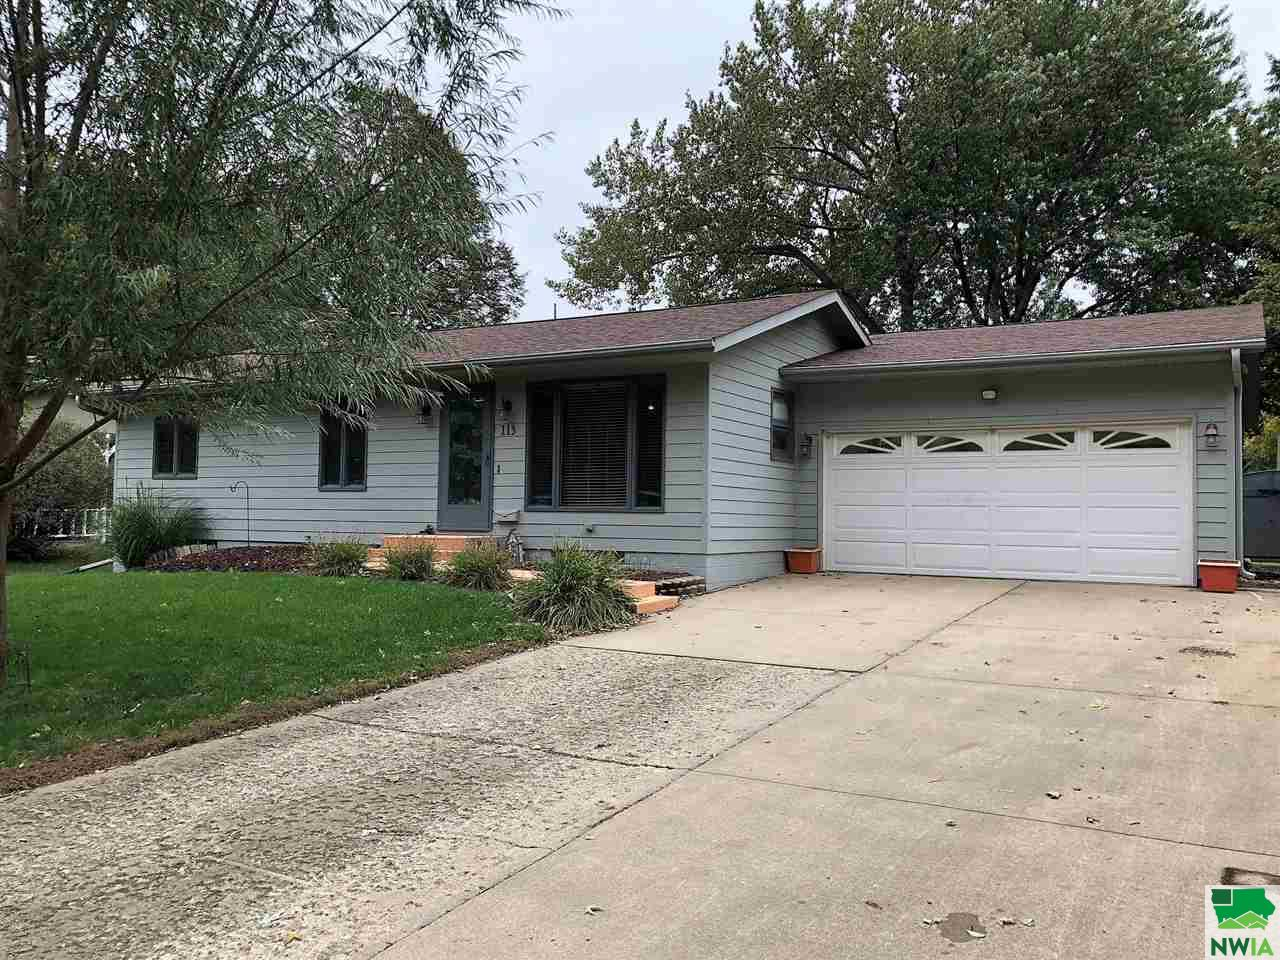 Property for sale at 113 Louisiana Ave Sw, Orange City,  IA 51041